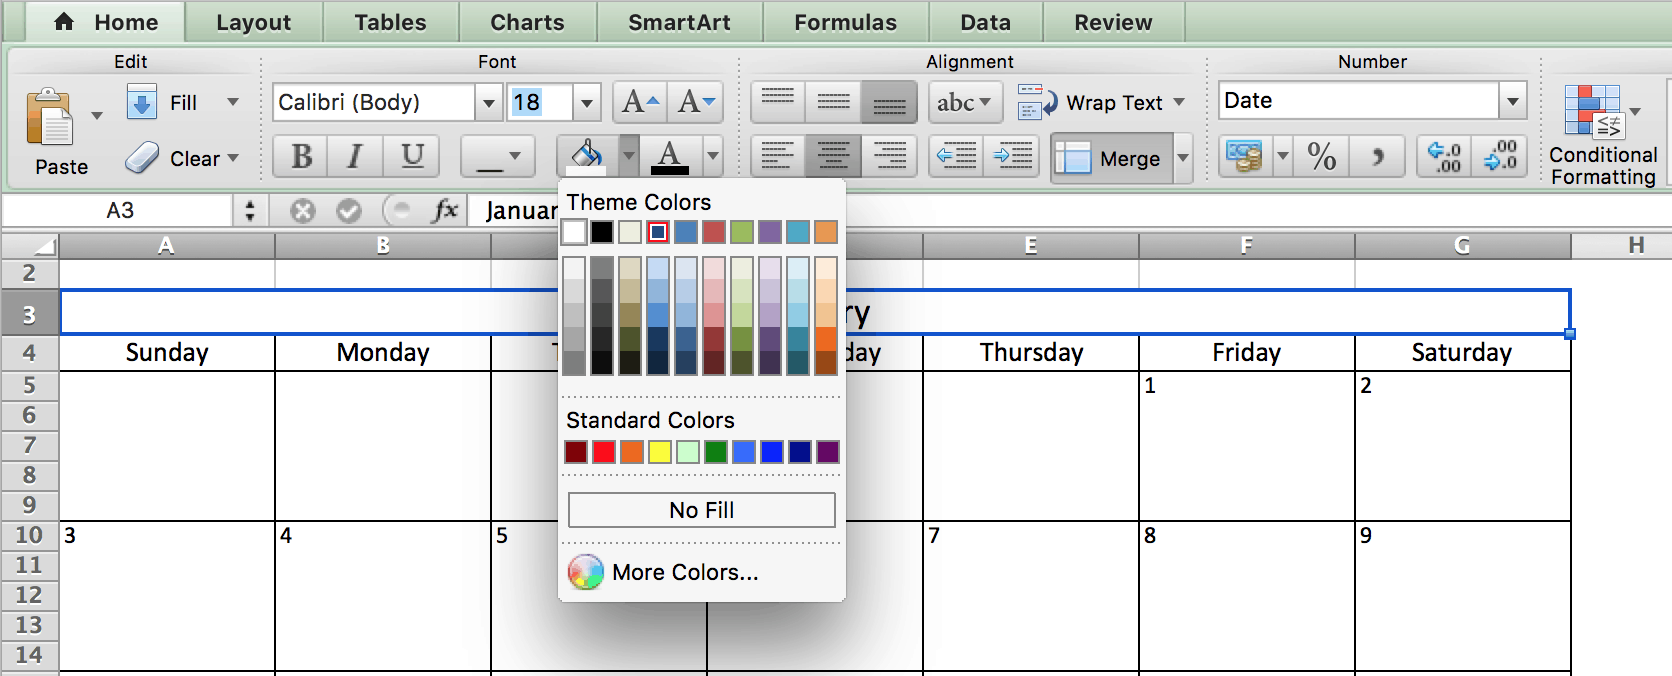 Ediblewildsus  Outstanding Make A  Calendar In Excel Includes Free Template With Lovable Choosing Colors  Calendar In Excel With Archaic Microsoft Excel Spreadsheet Free Download Also Creating A Line Chart In Excel In Addition How To Highlight Columns In Excel And Excel San Antonio As Well As Free Excel Class Additionally Annuity Calculator Excel From Smartsheetcom With Ediblewildsus  Lovable Make A  Calendar In Excel Includes Free Template With Archaic Choosing Colors  Calendar In Excel And Outstanding Microsoft Excel Spreadsheet Free Download Also Creating A Line Chart In Excel In Addition How To Highlight Columns In Excel From Smartsheetcom